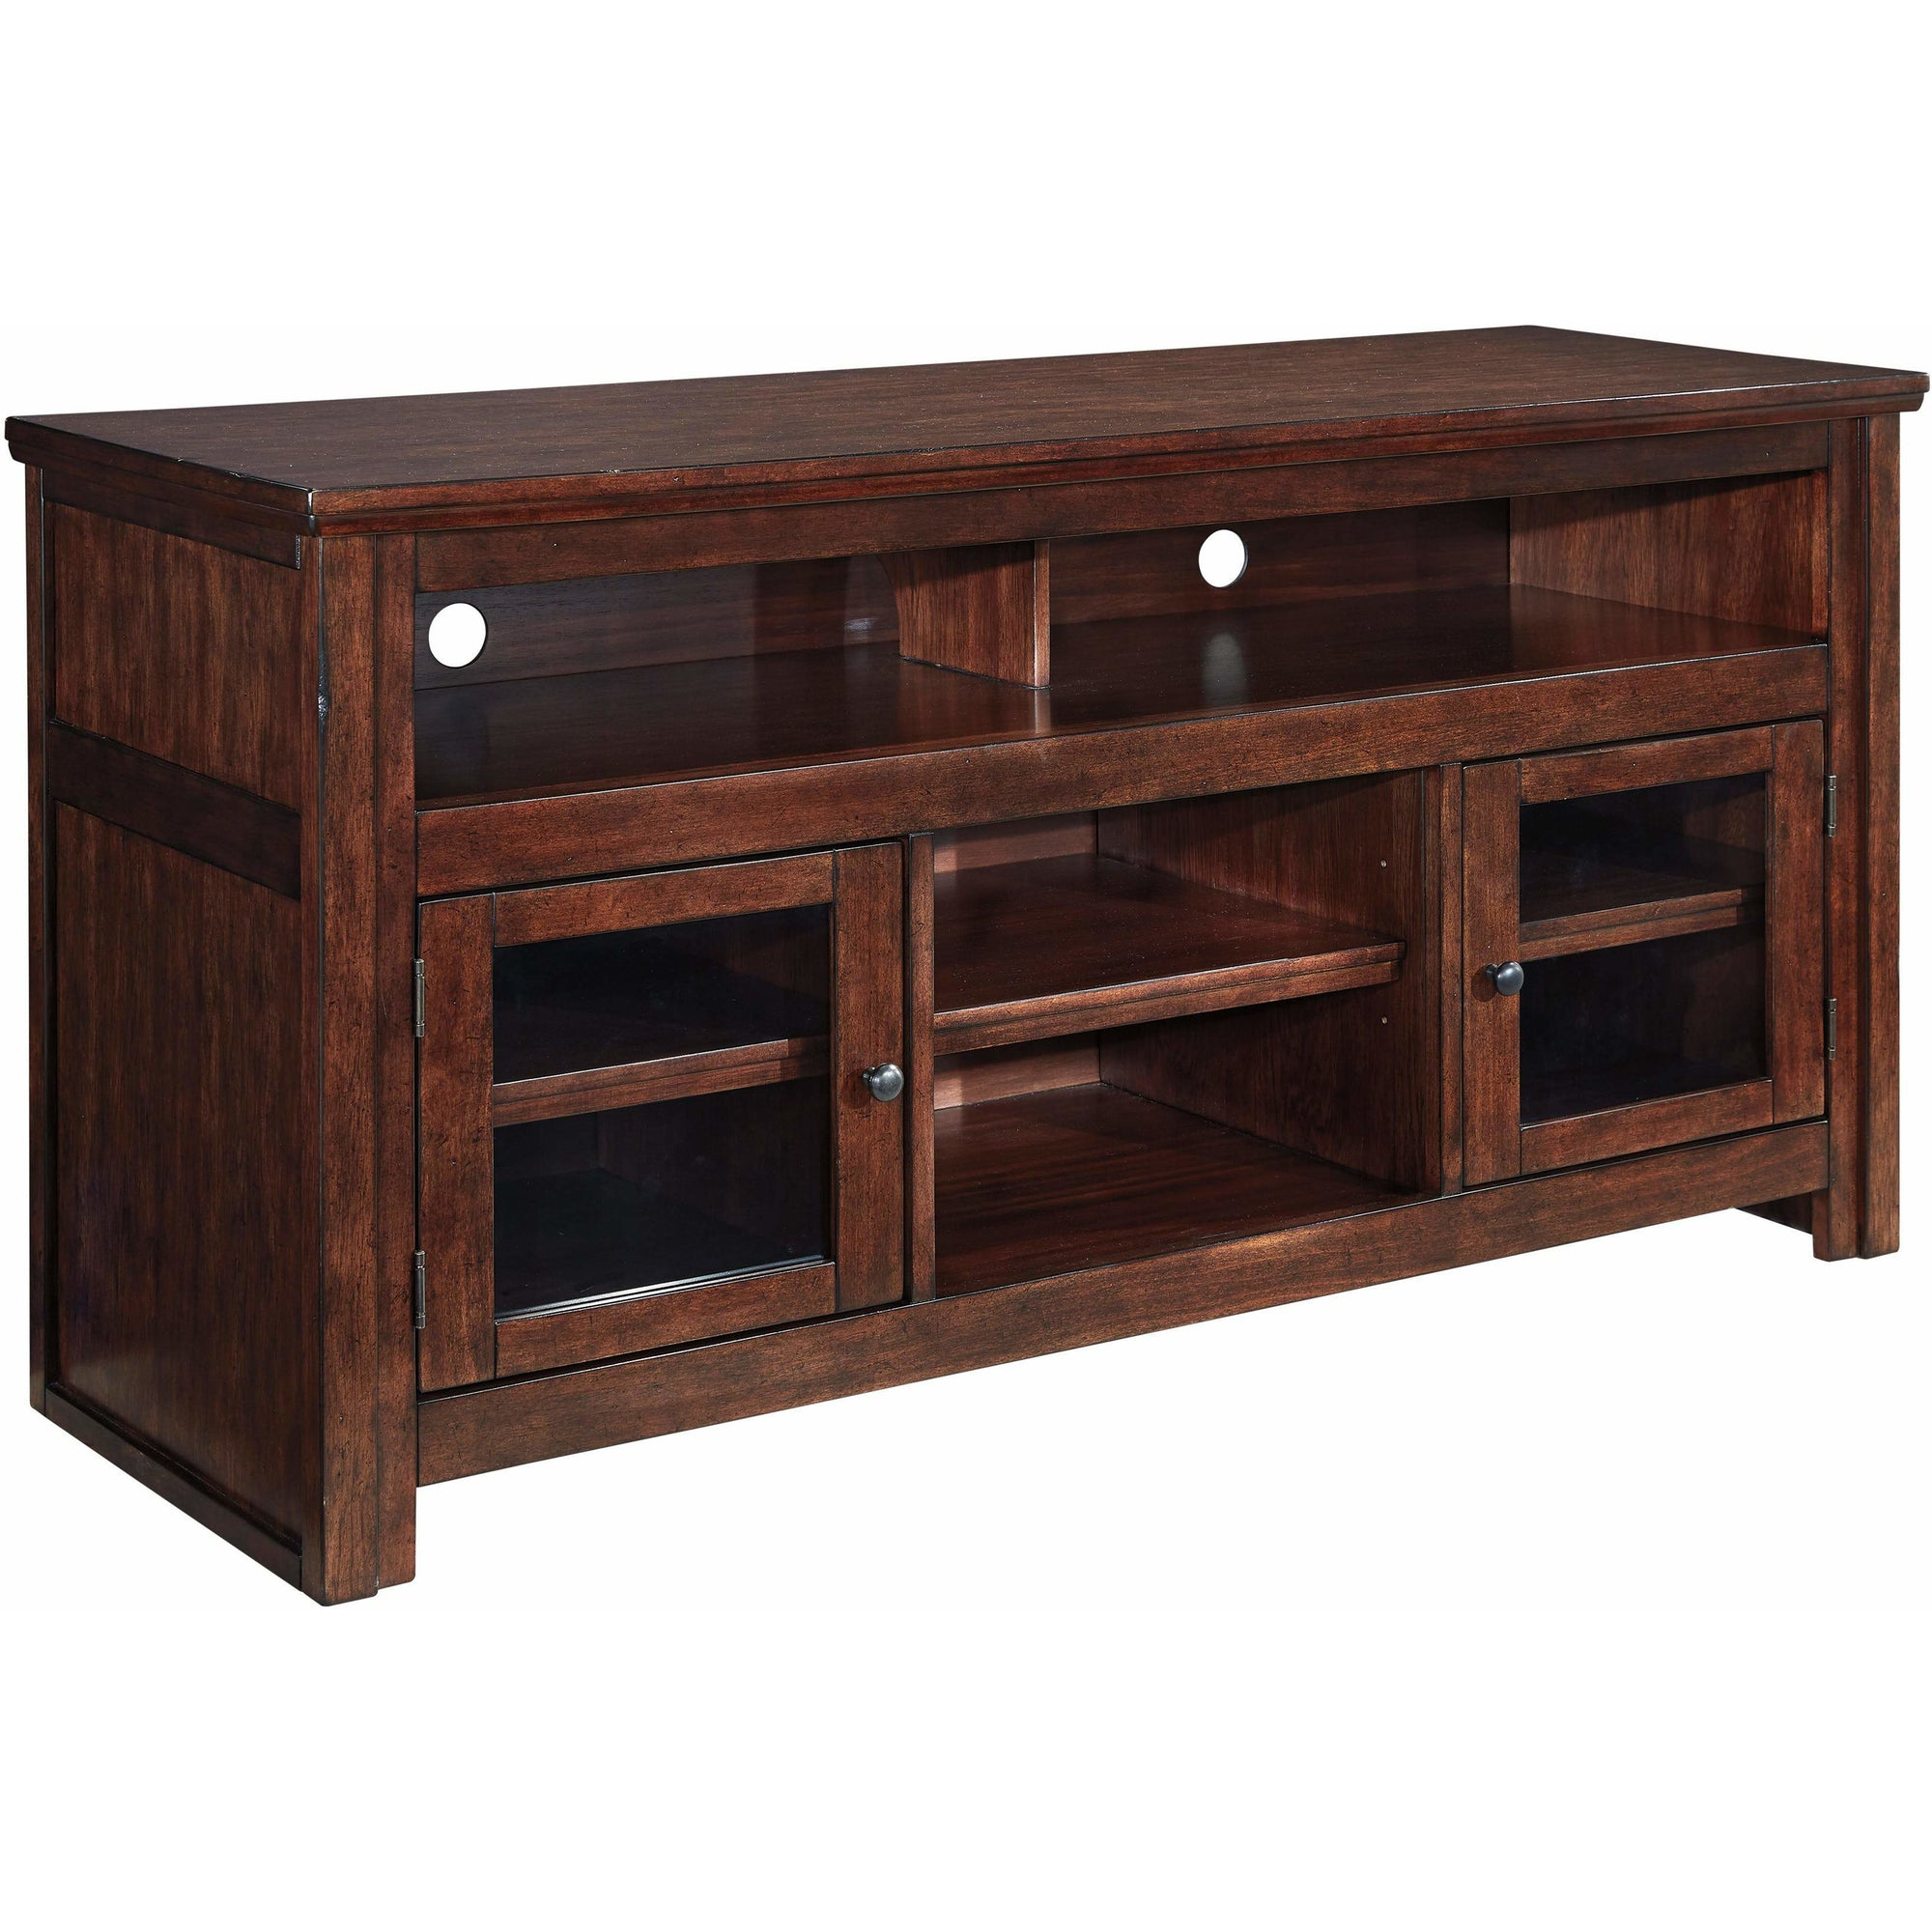 Harpan TV Console - Large